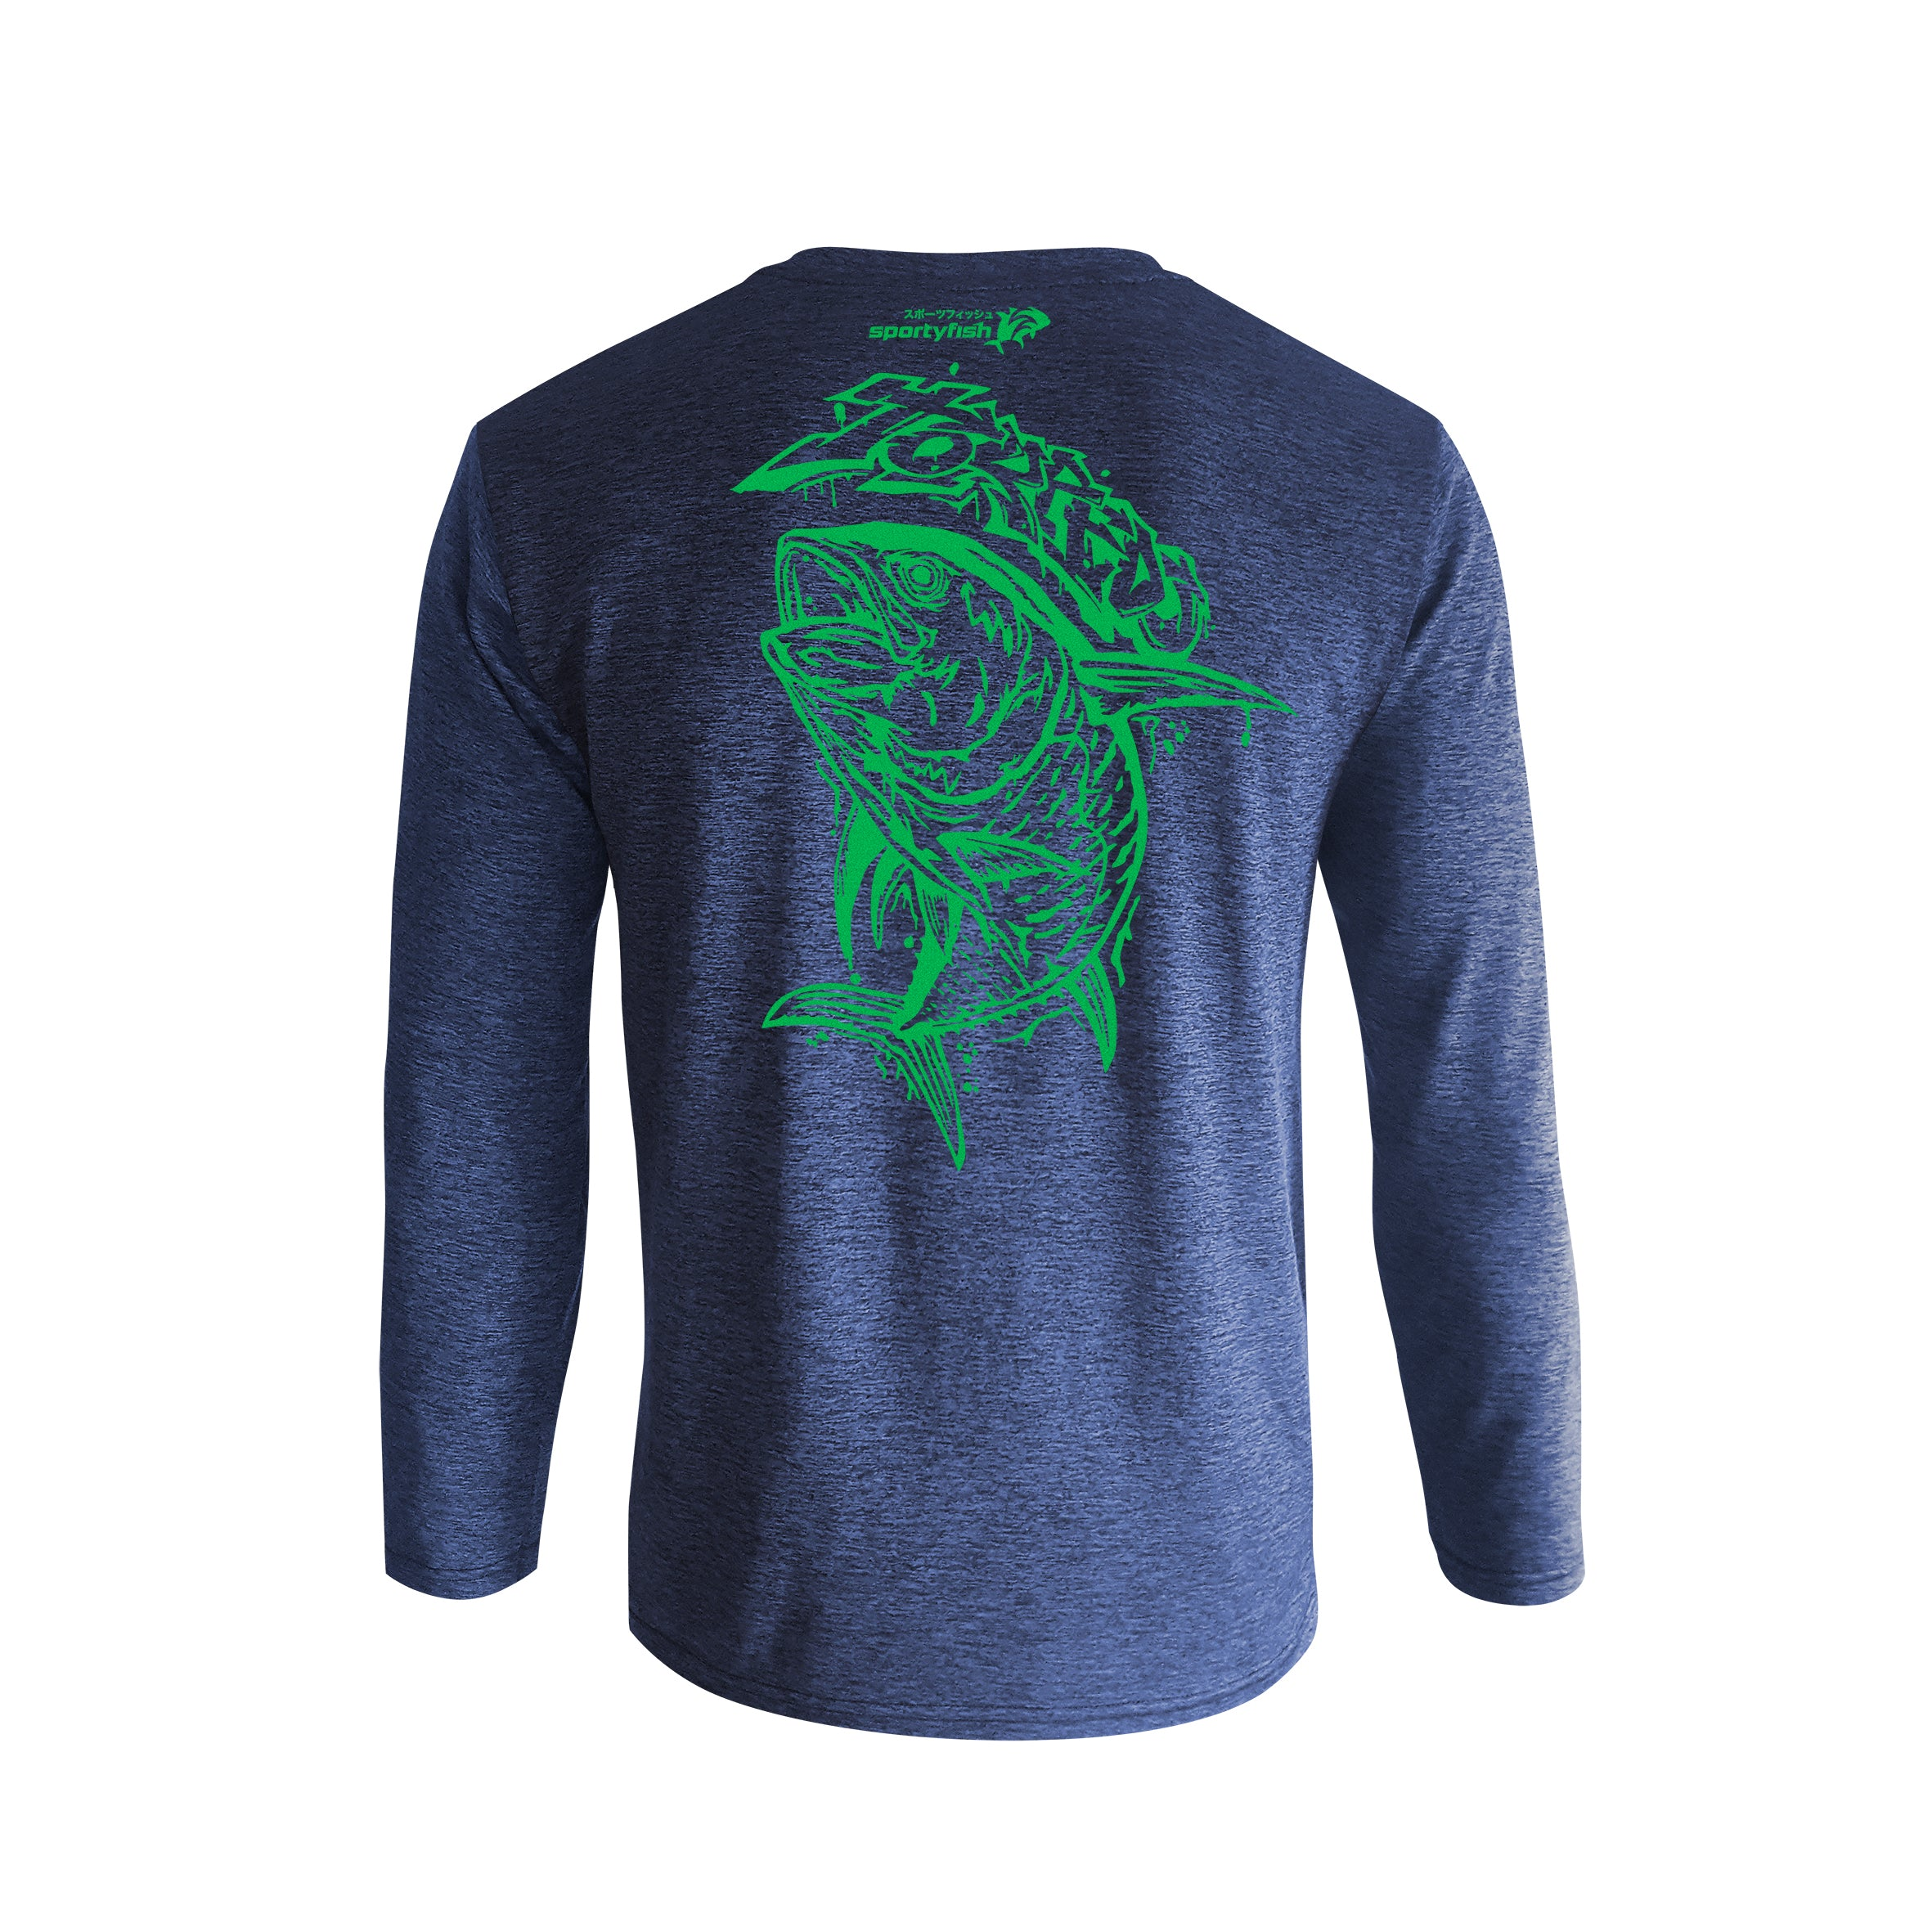 Wildstyle Graffiti Series Blue Long-sleeves T-shirt(back view)Electric Green: Yellowfin Tuna